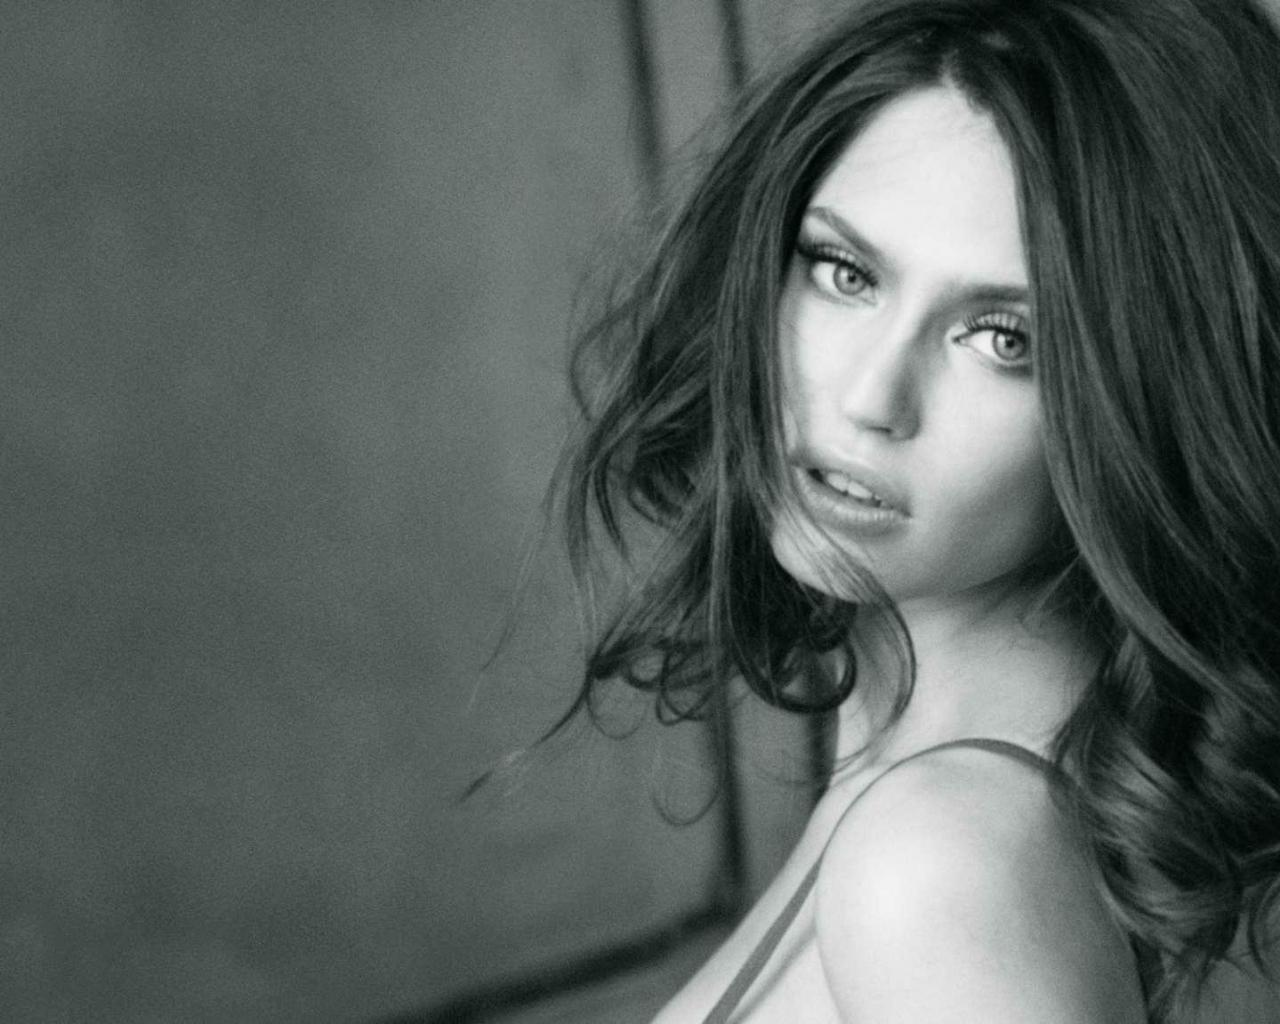 Beauty Italian Model Bianca Balti